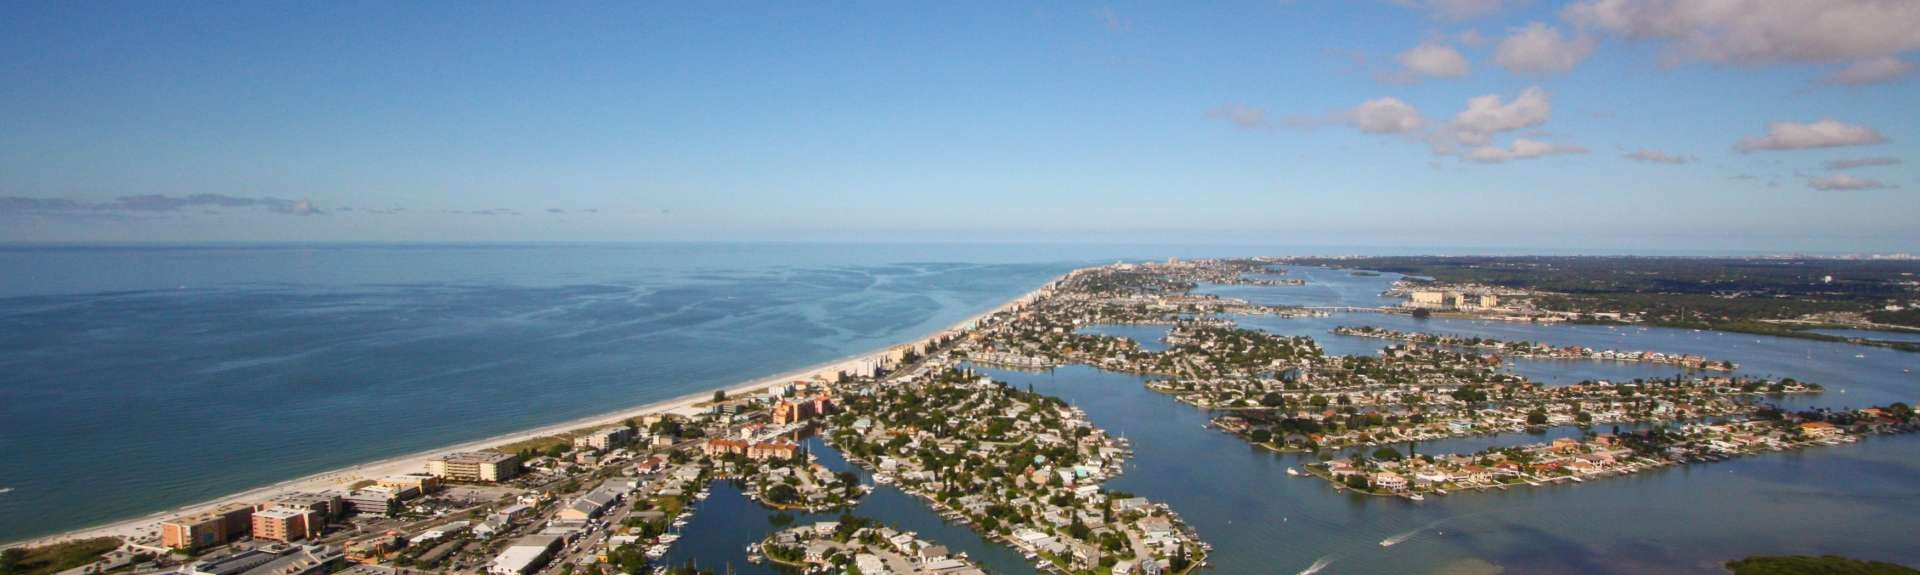 Madeira Bay Resort II, Madeira Beach, Florida, United States of America